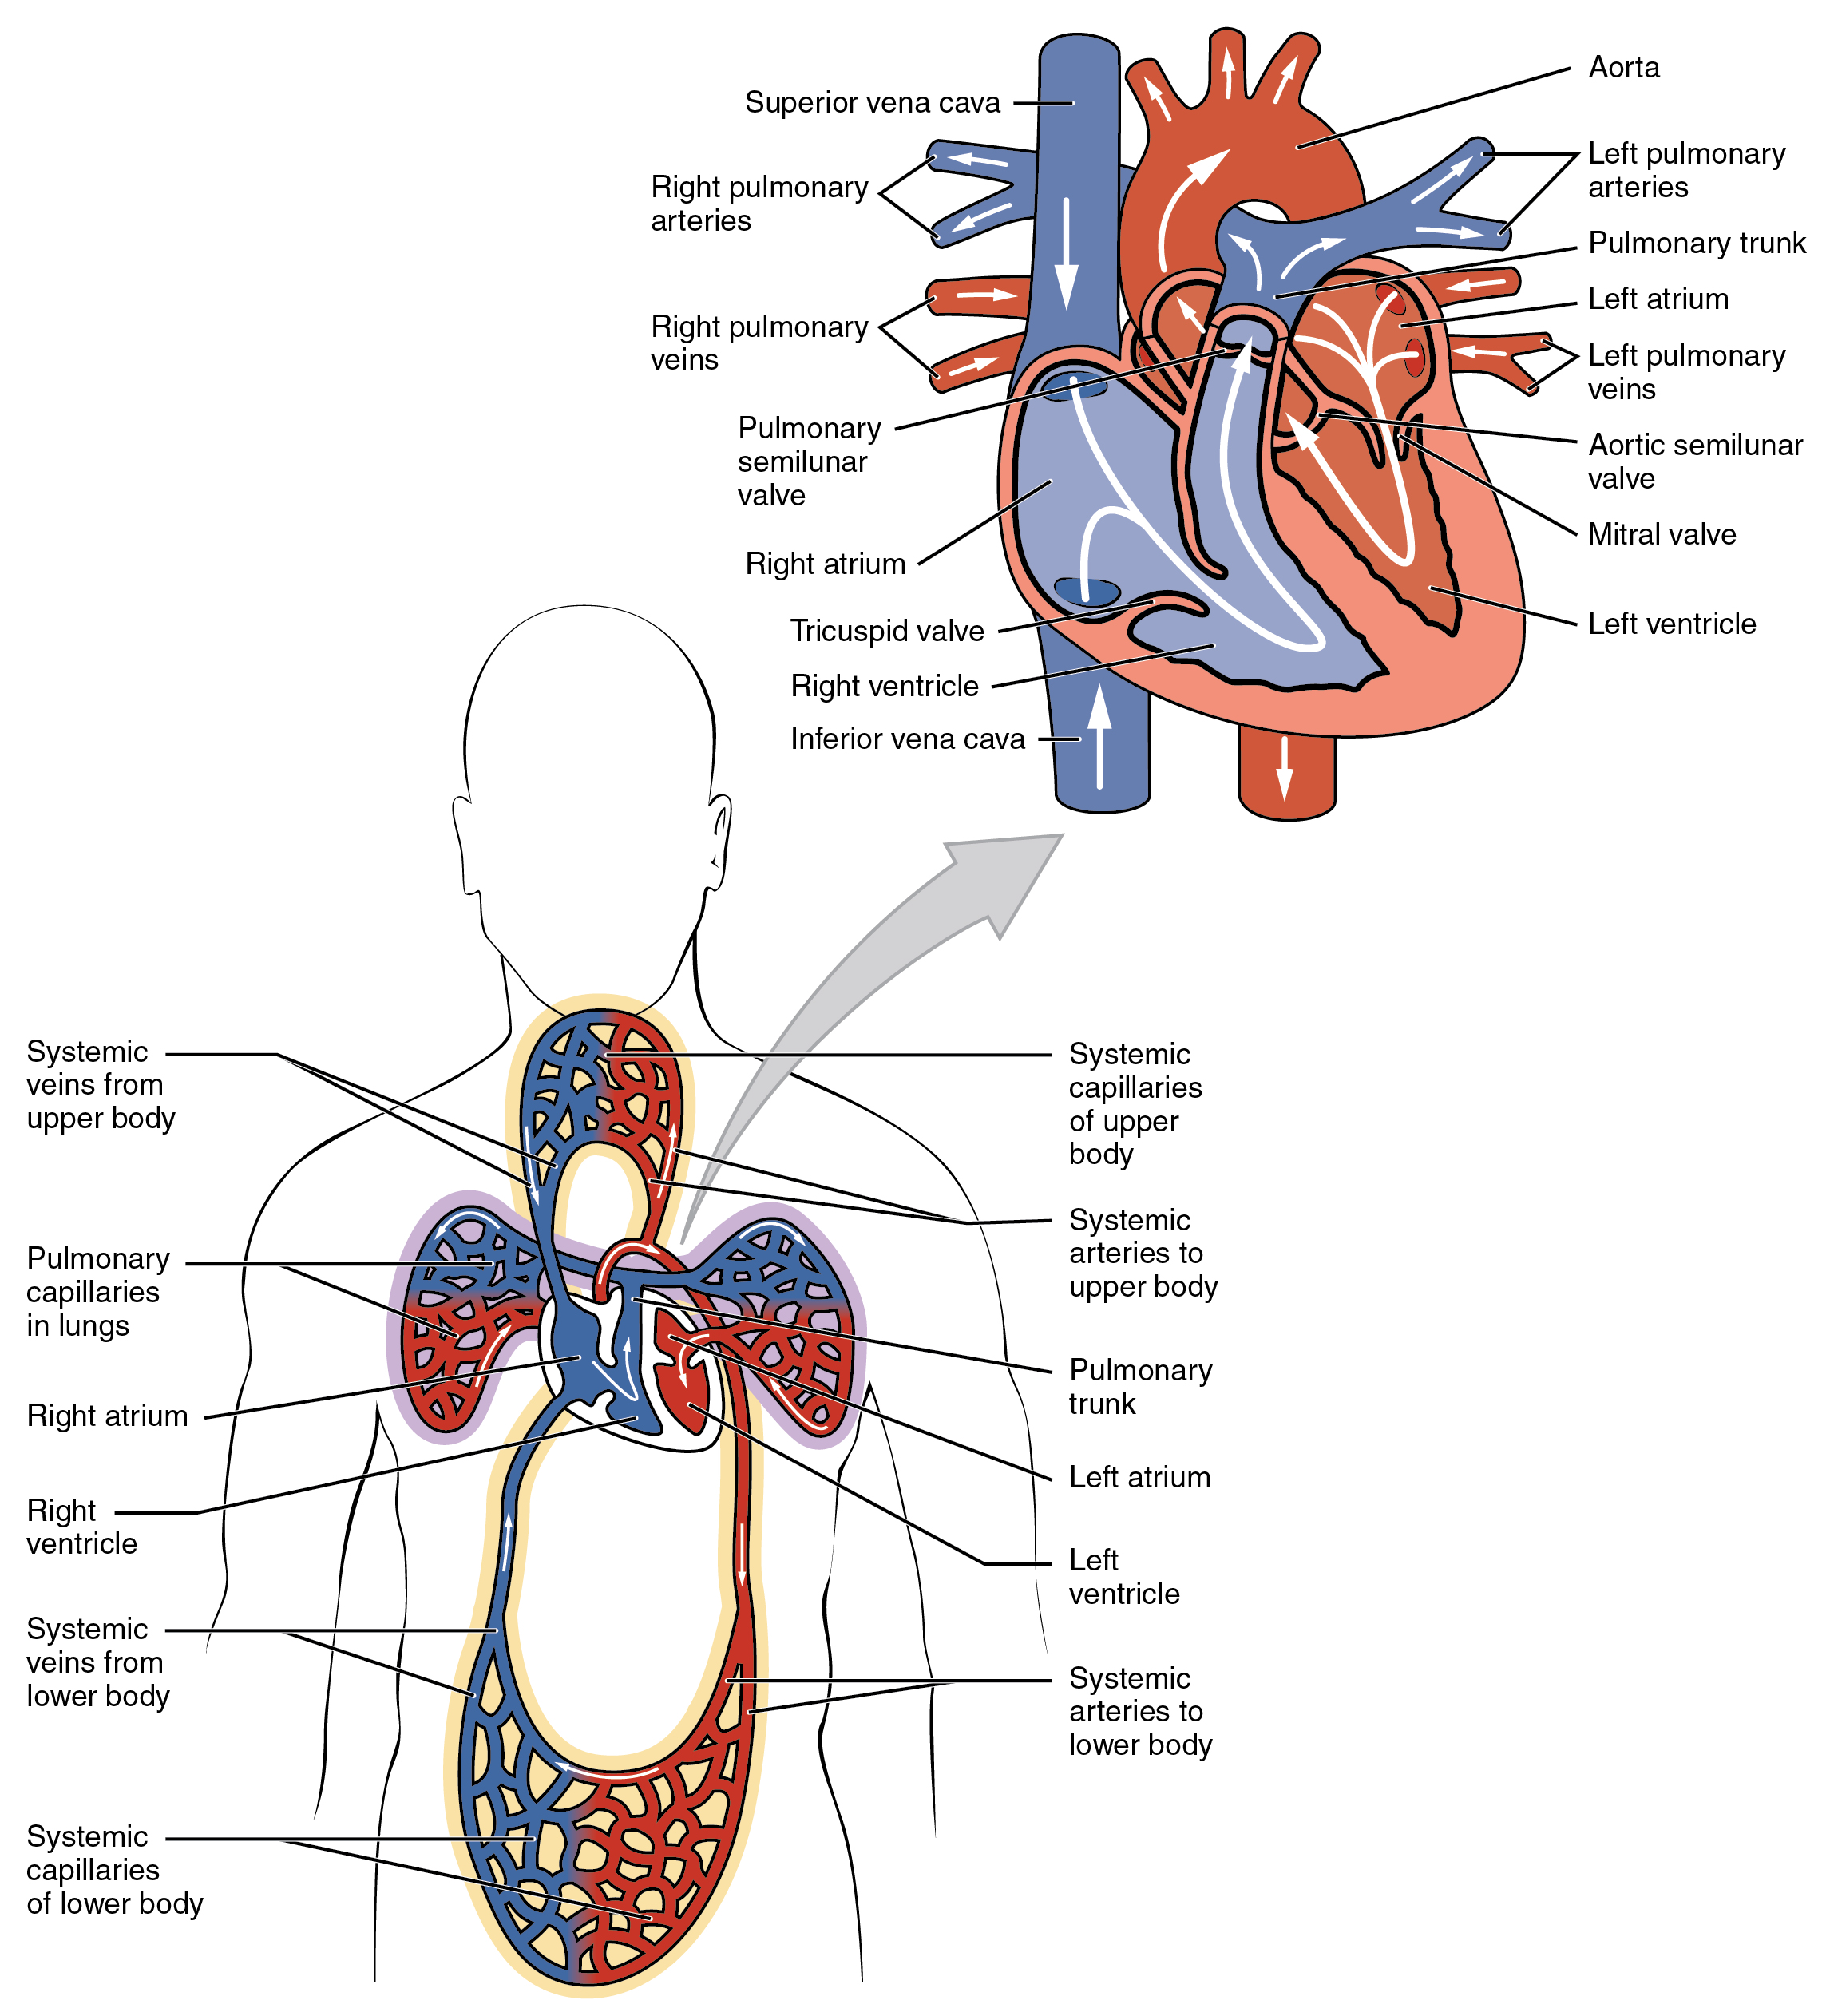 Openstax Anatomy And Physiology Ch19 The Cardiovascular System